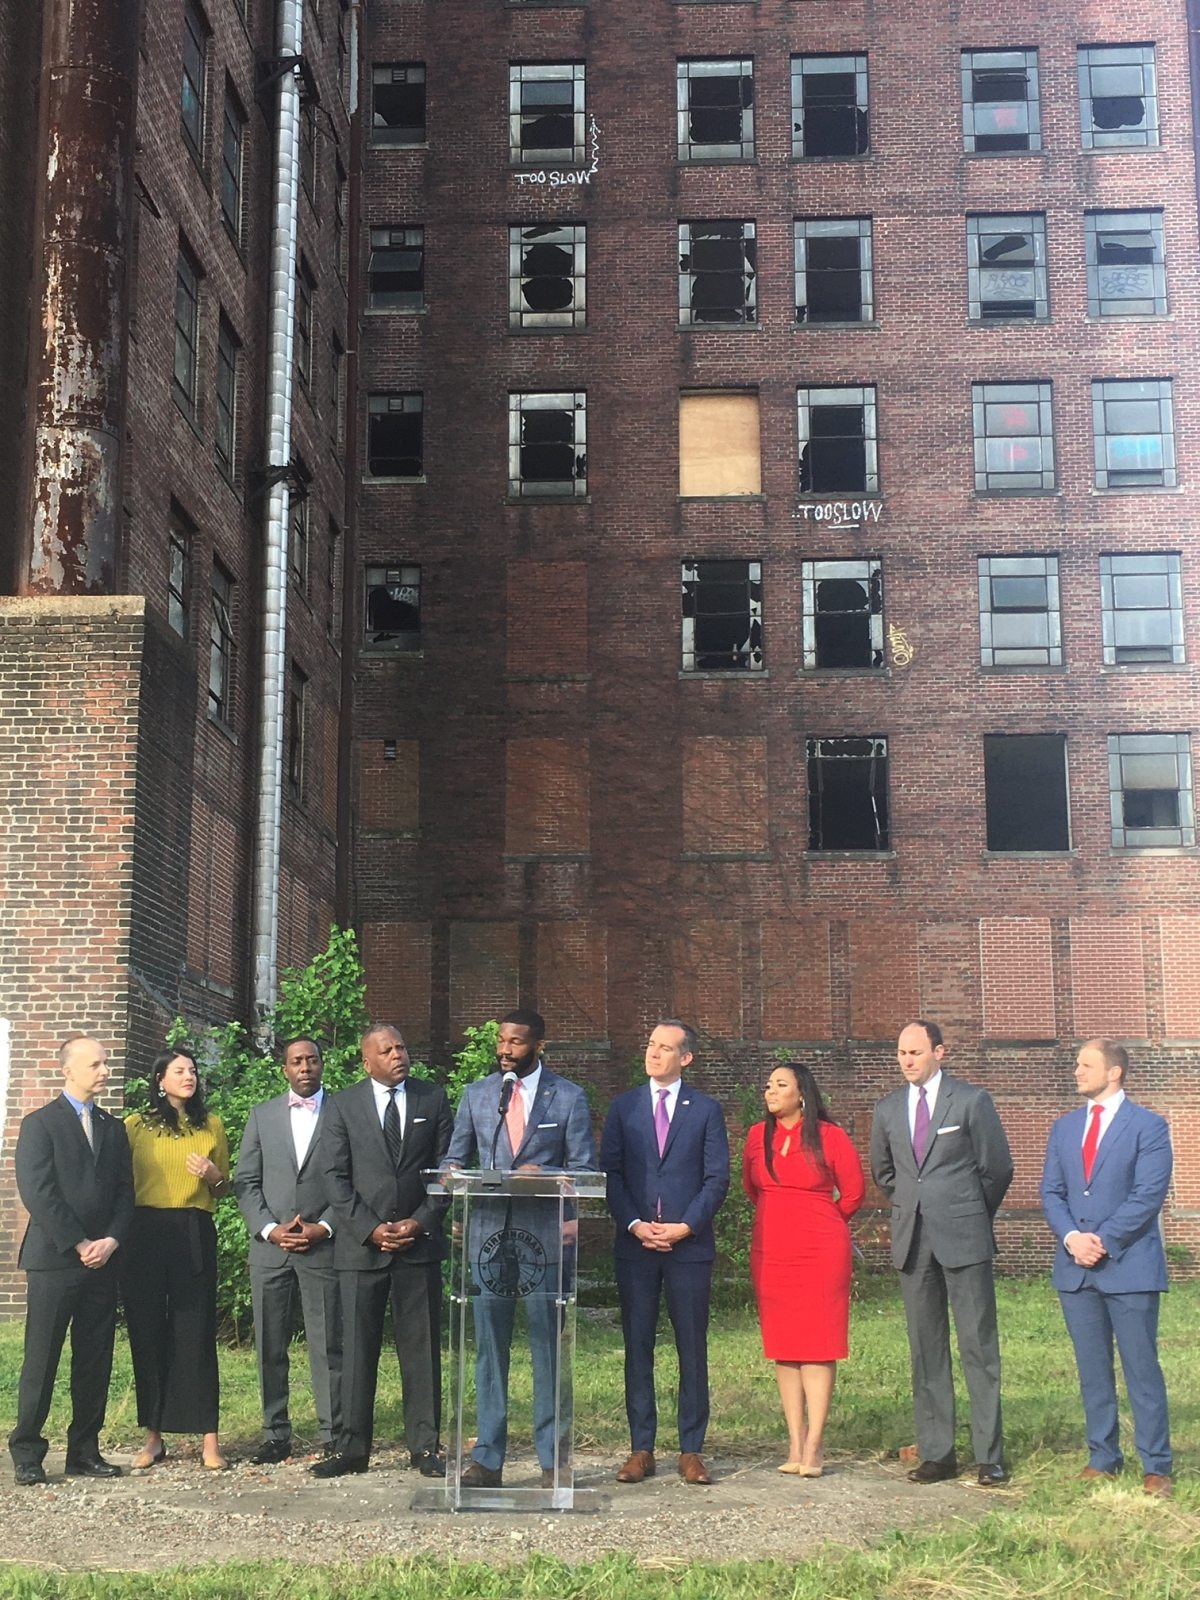 Mayor Woodfin unveils new partnership to drive investment into Birmingham Opportunity Zones